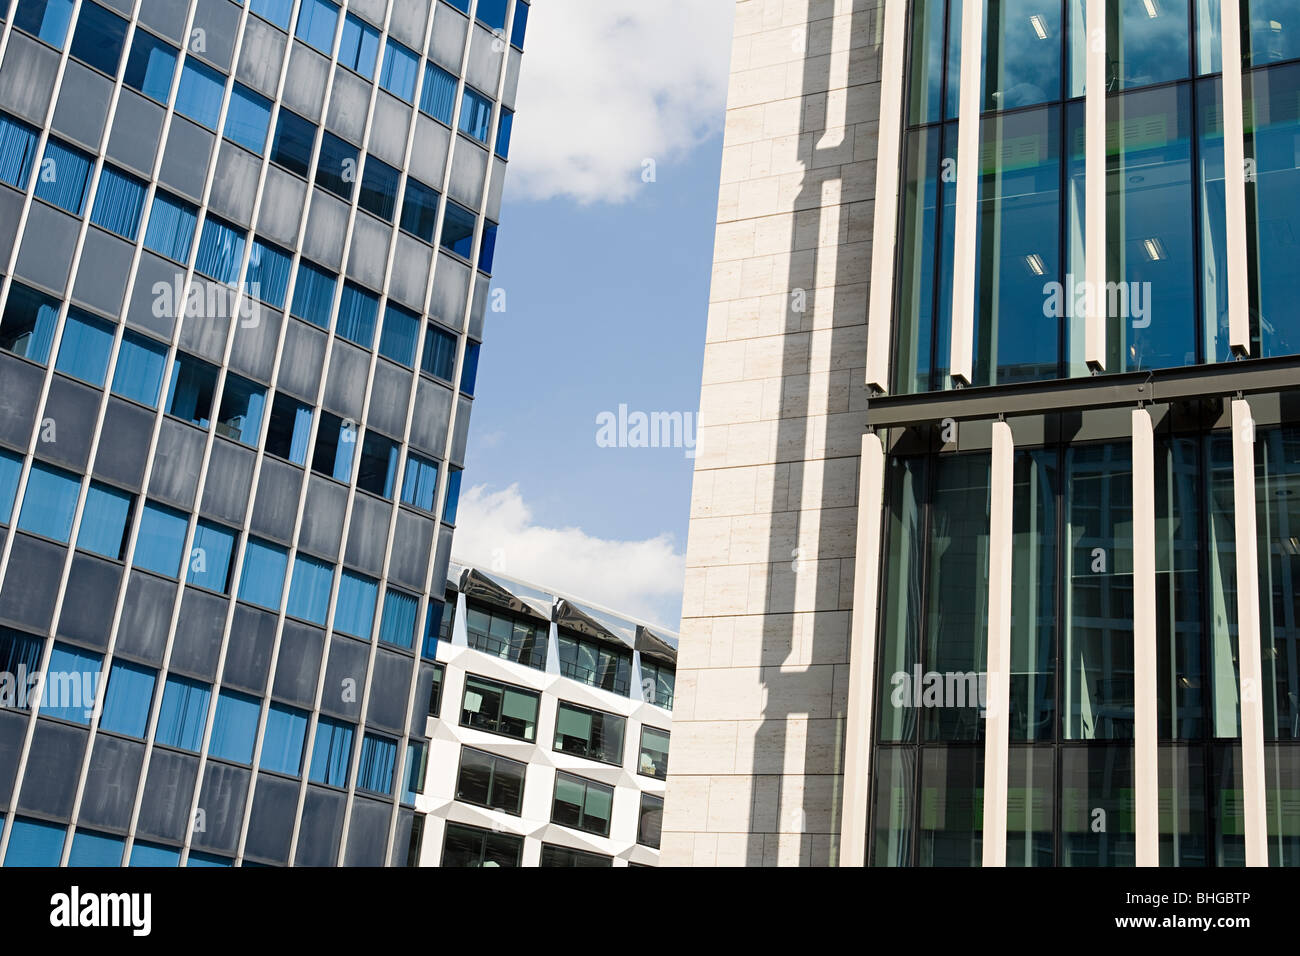 Facades of an office building - Stock Image